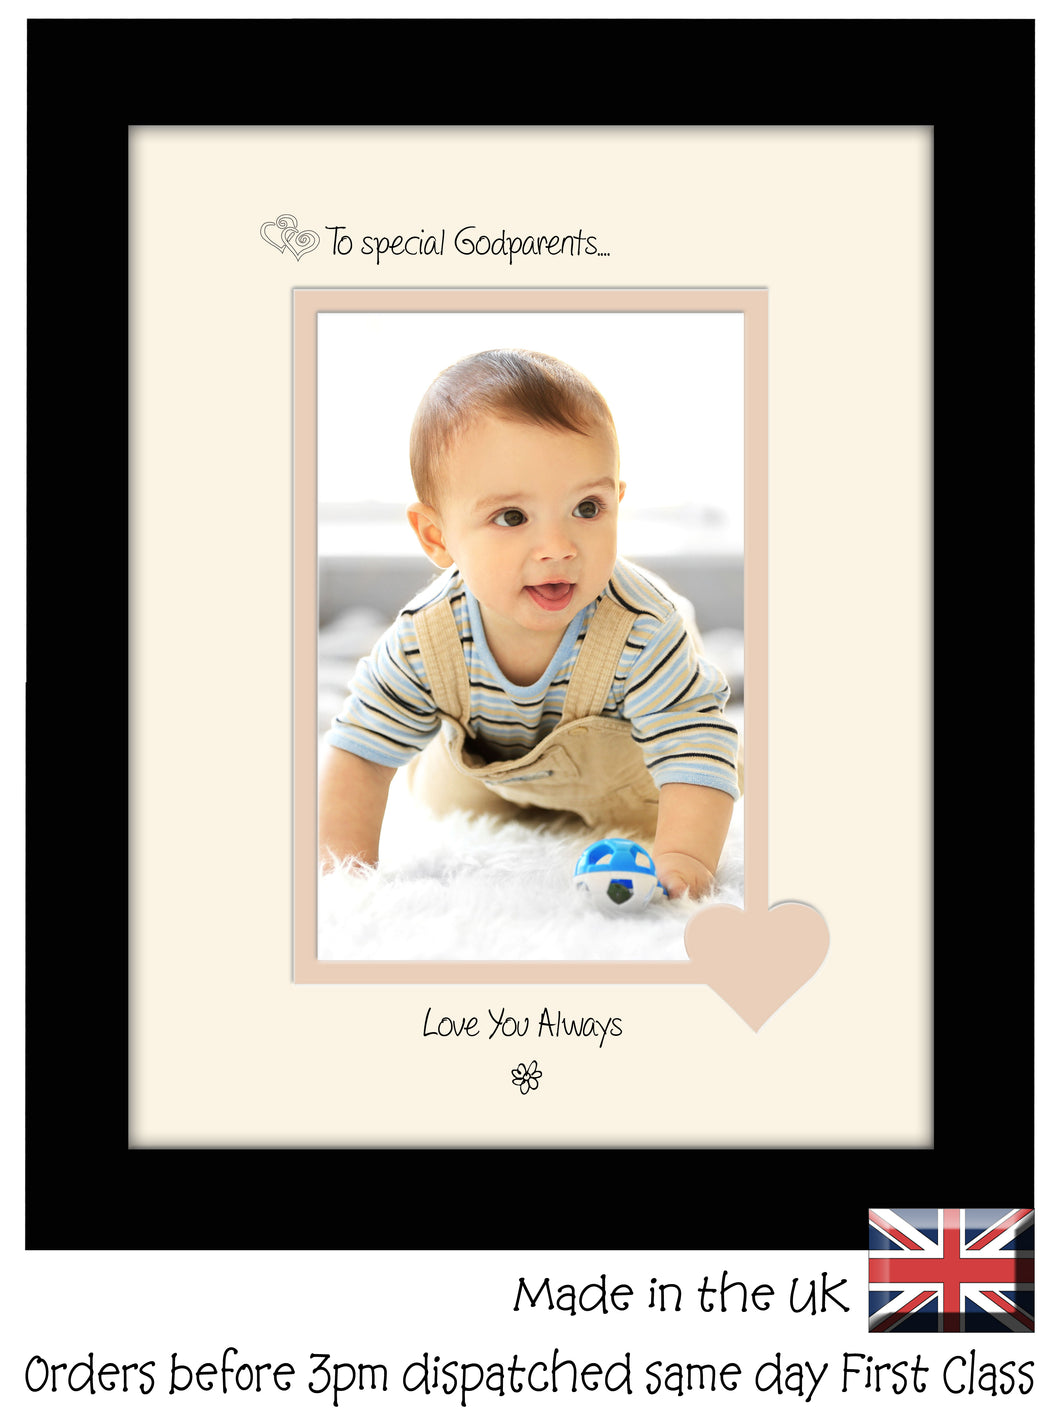 Godparents Photo Frame - To a Special Godparents ... Love you Always Portrait photo frame 6